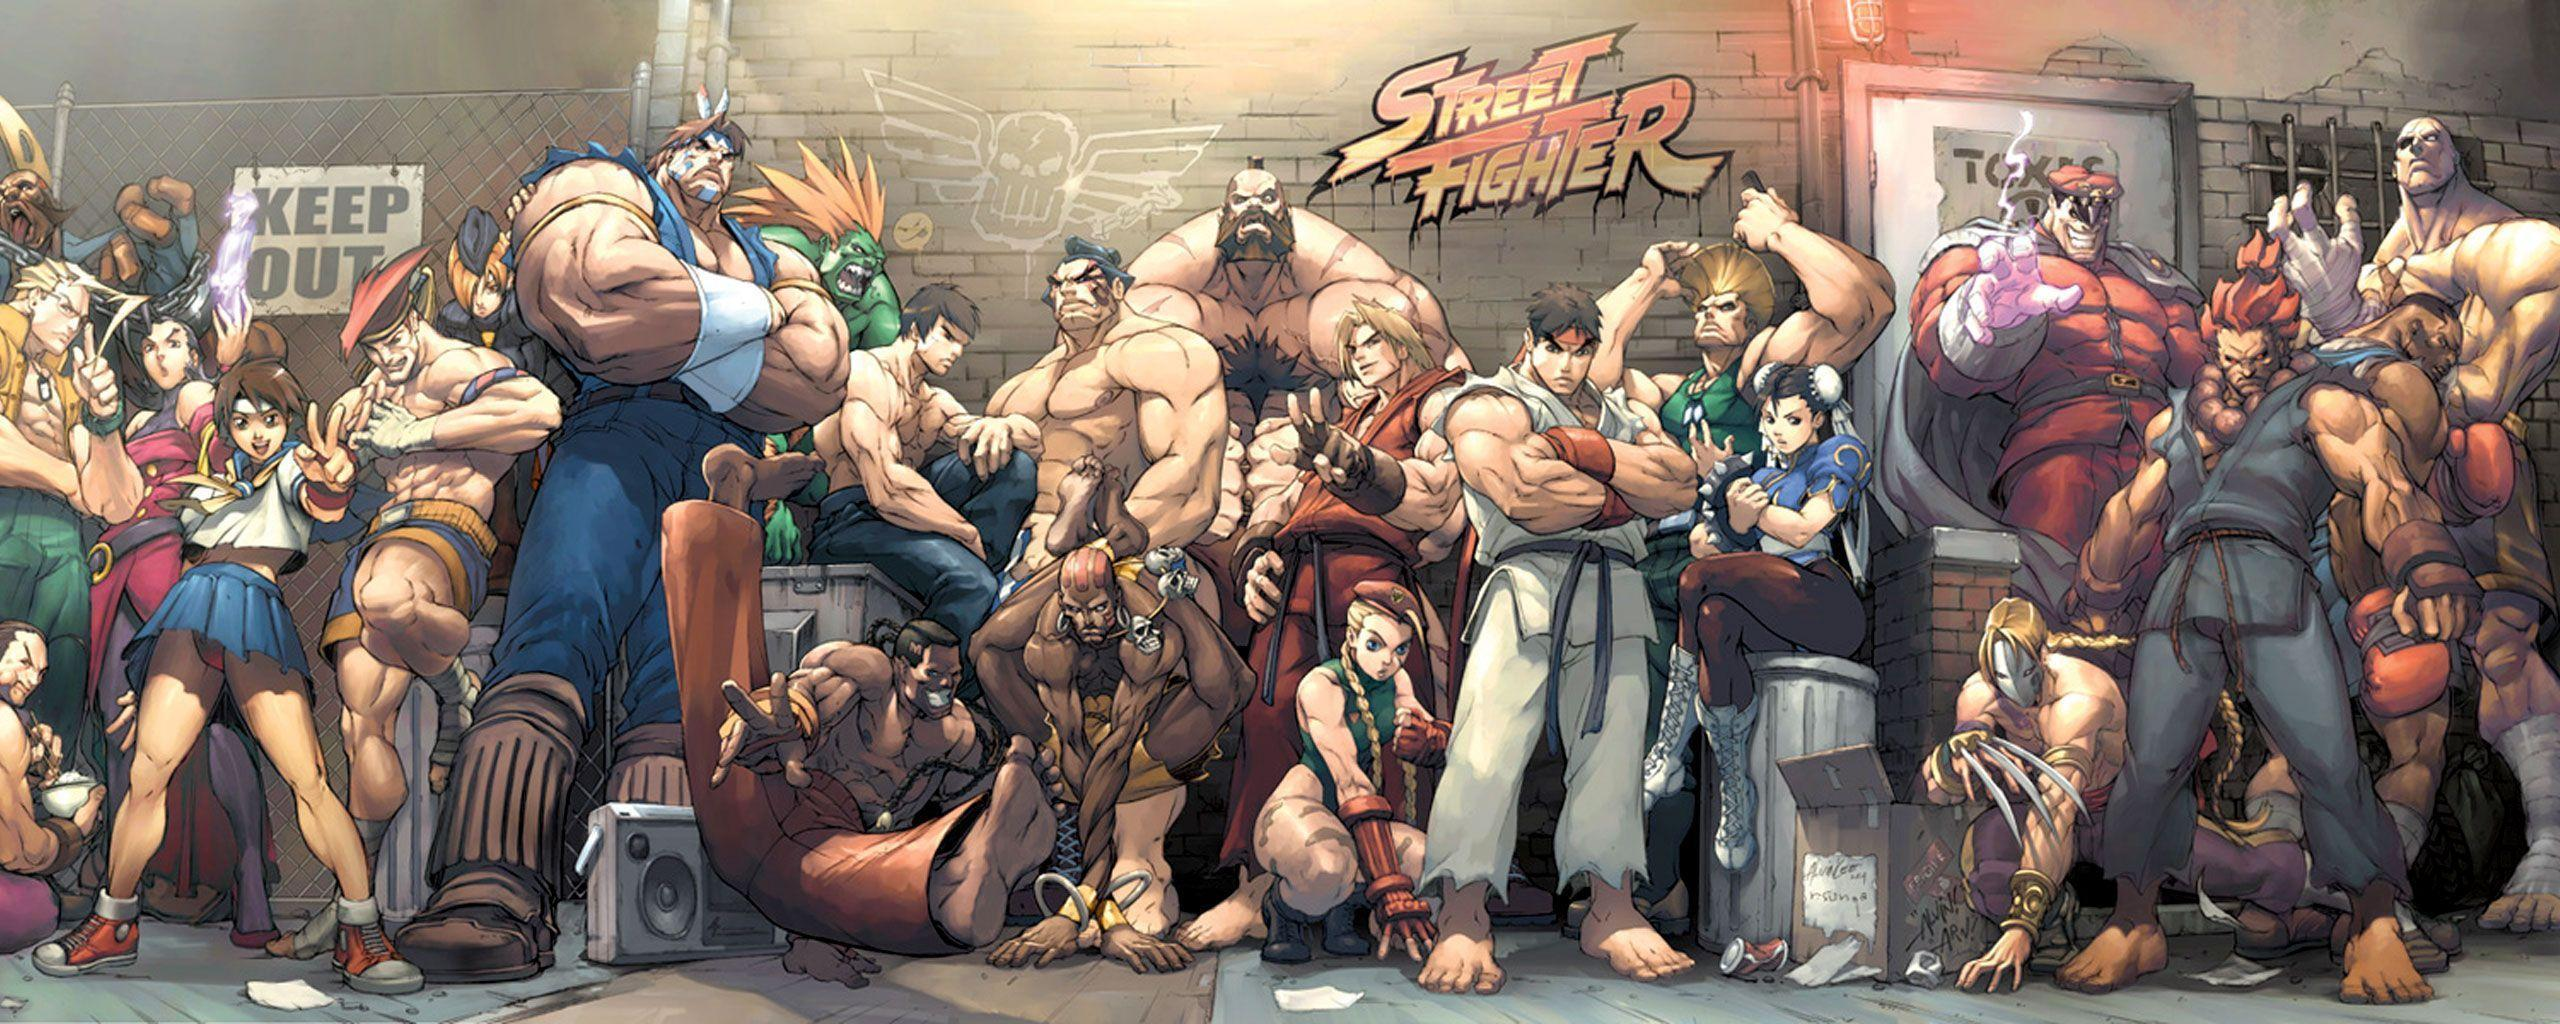 Street Fighter HD Wallpapers Wallpaper